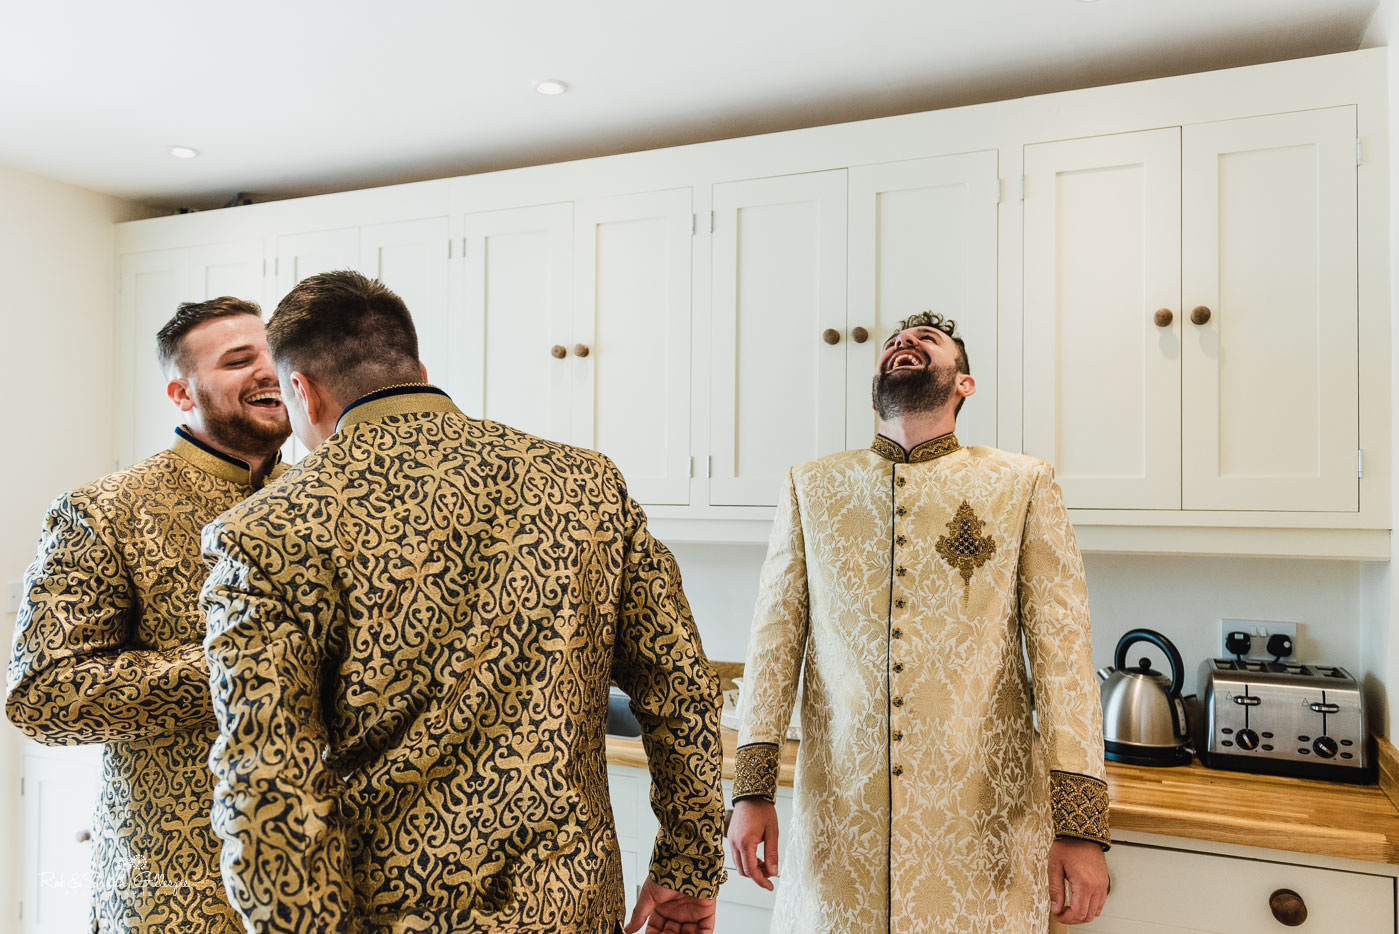 Groom and ushers prepare for fusion wedding at Pendrell Hall in Indian outfits